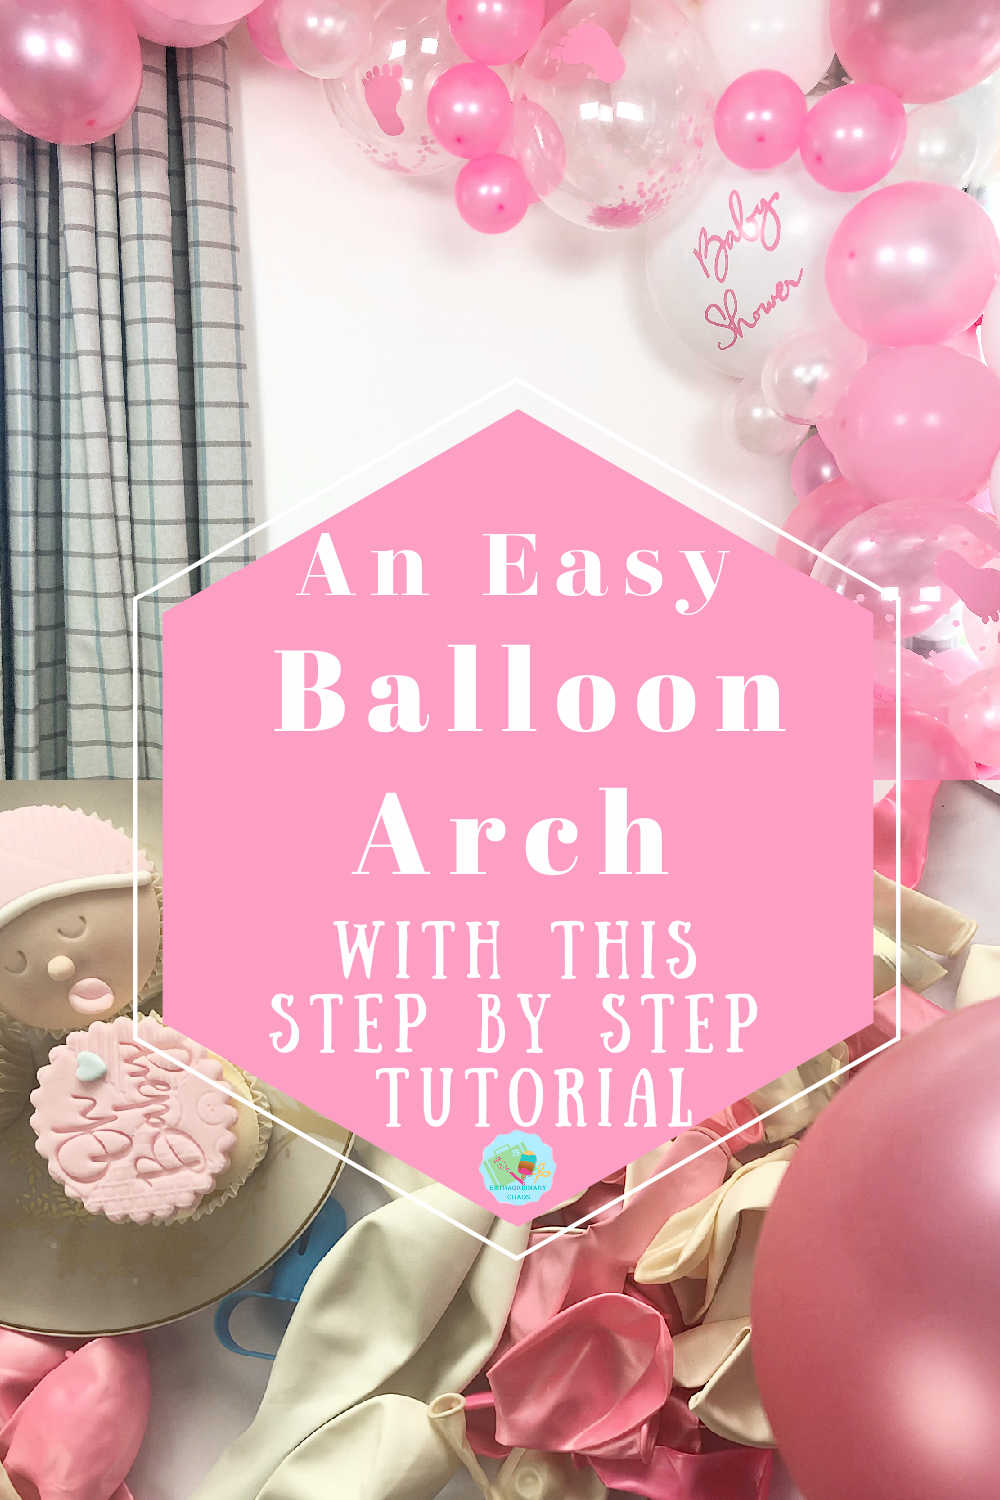 An easy Balloon Arch with a step by step tutorial on how to build a Balloon Arch and personalise with Cricut